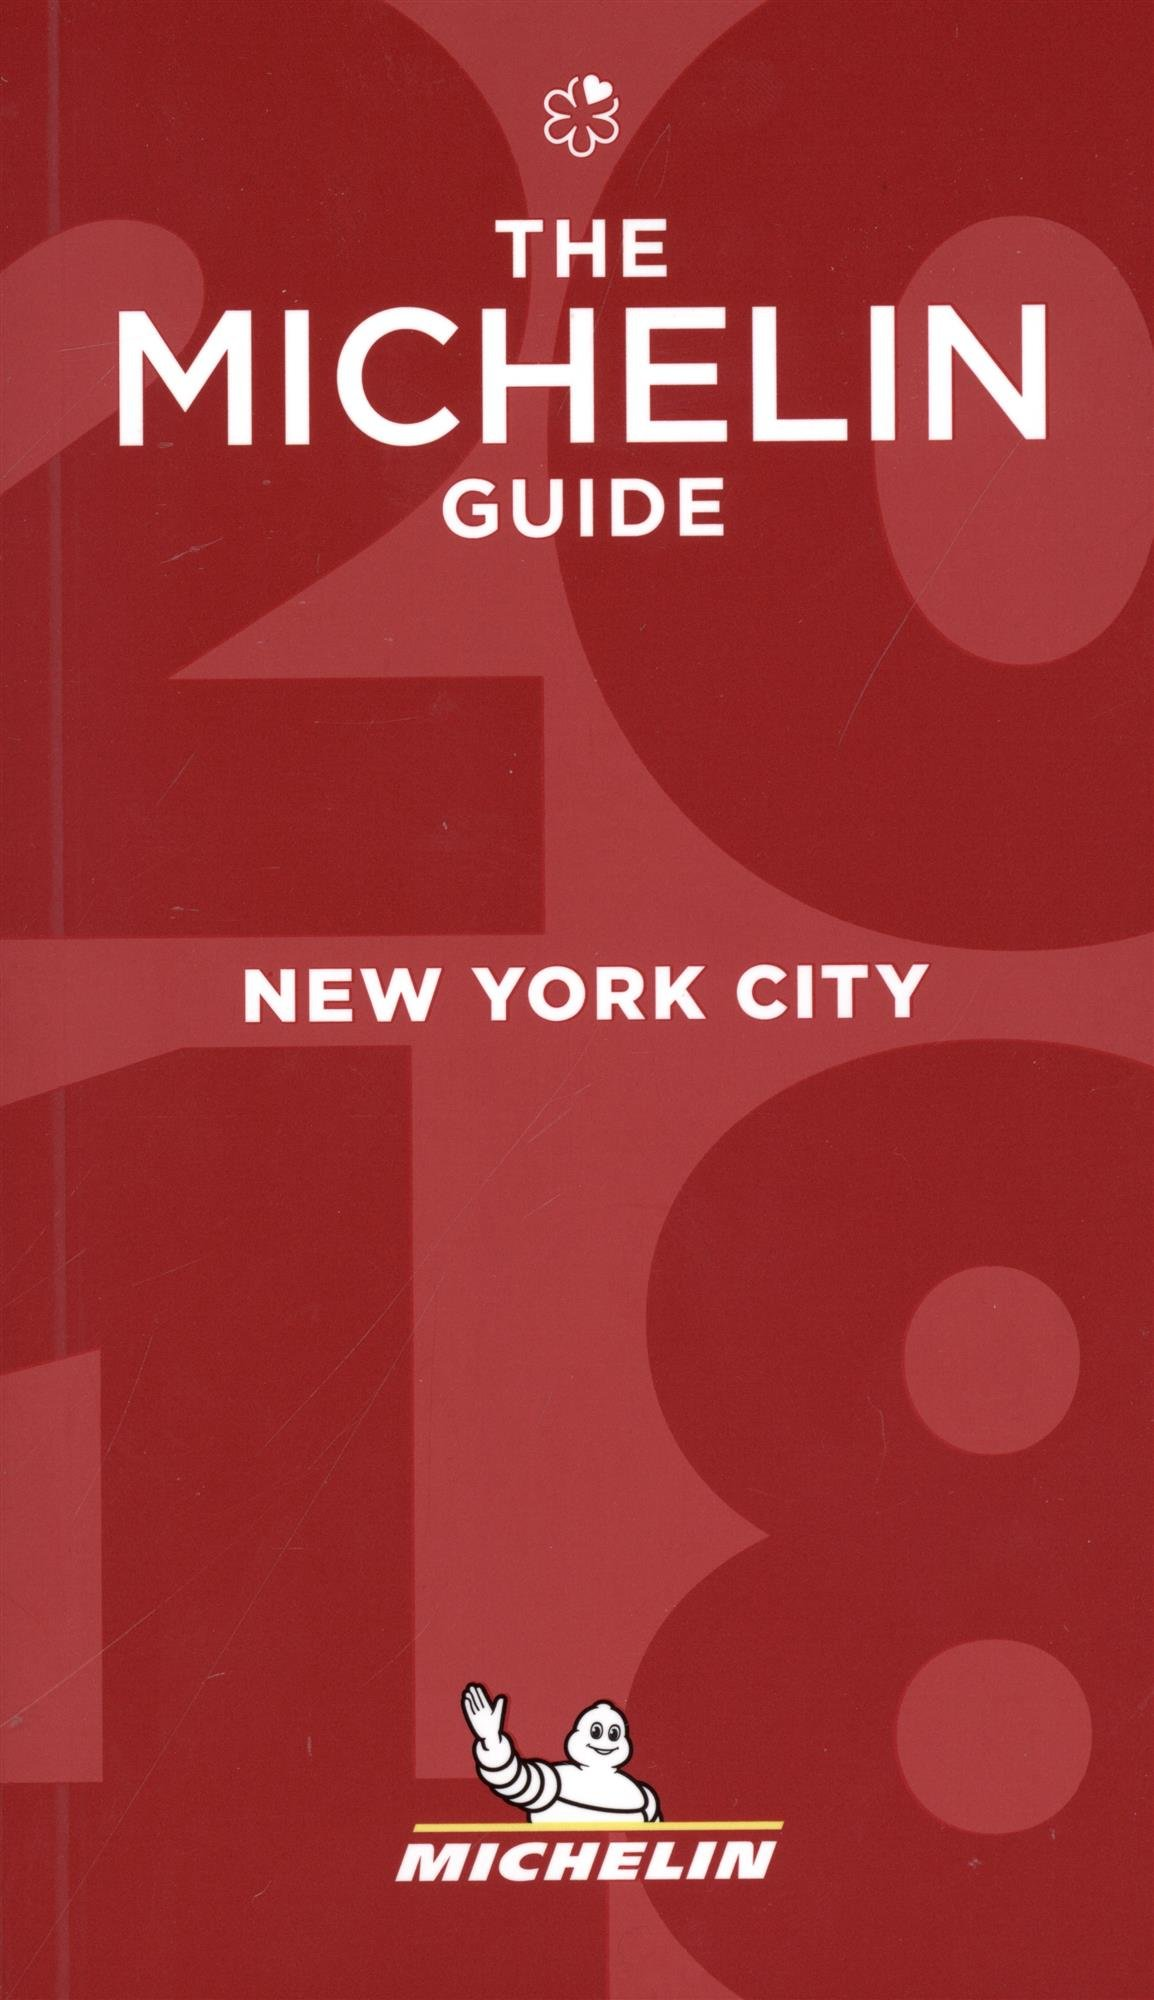 Michelin Guide New York City 2018: Restaurants Michelin Red Guide Idioma Inglés: Amazon.es: Michelin: Libros en ...